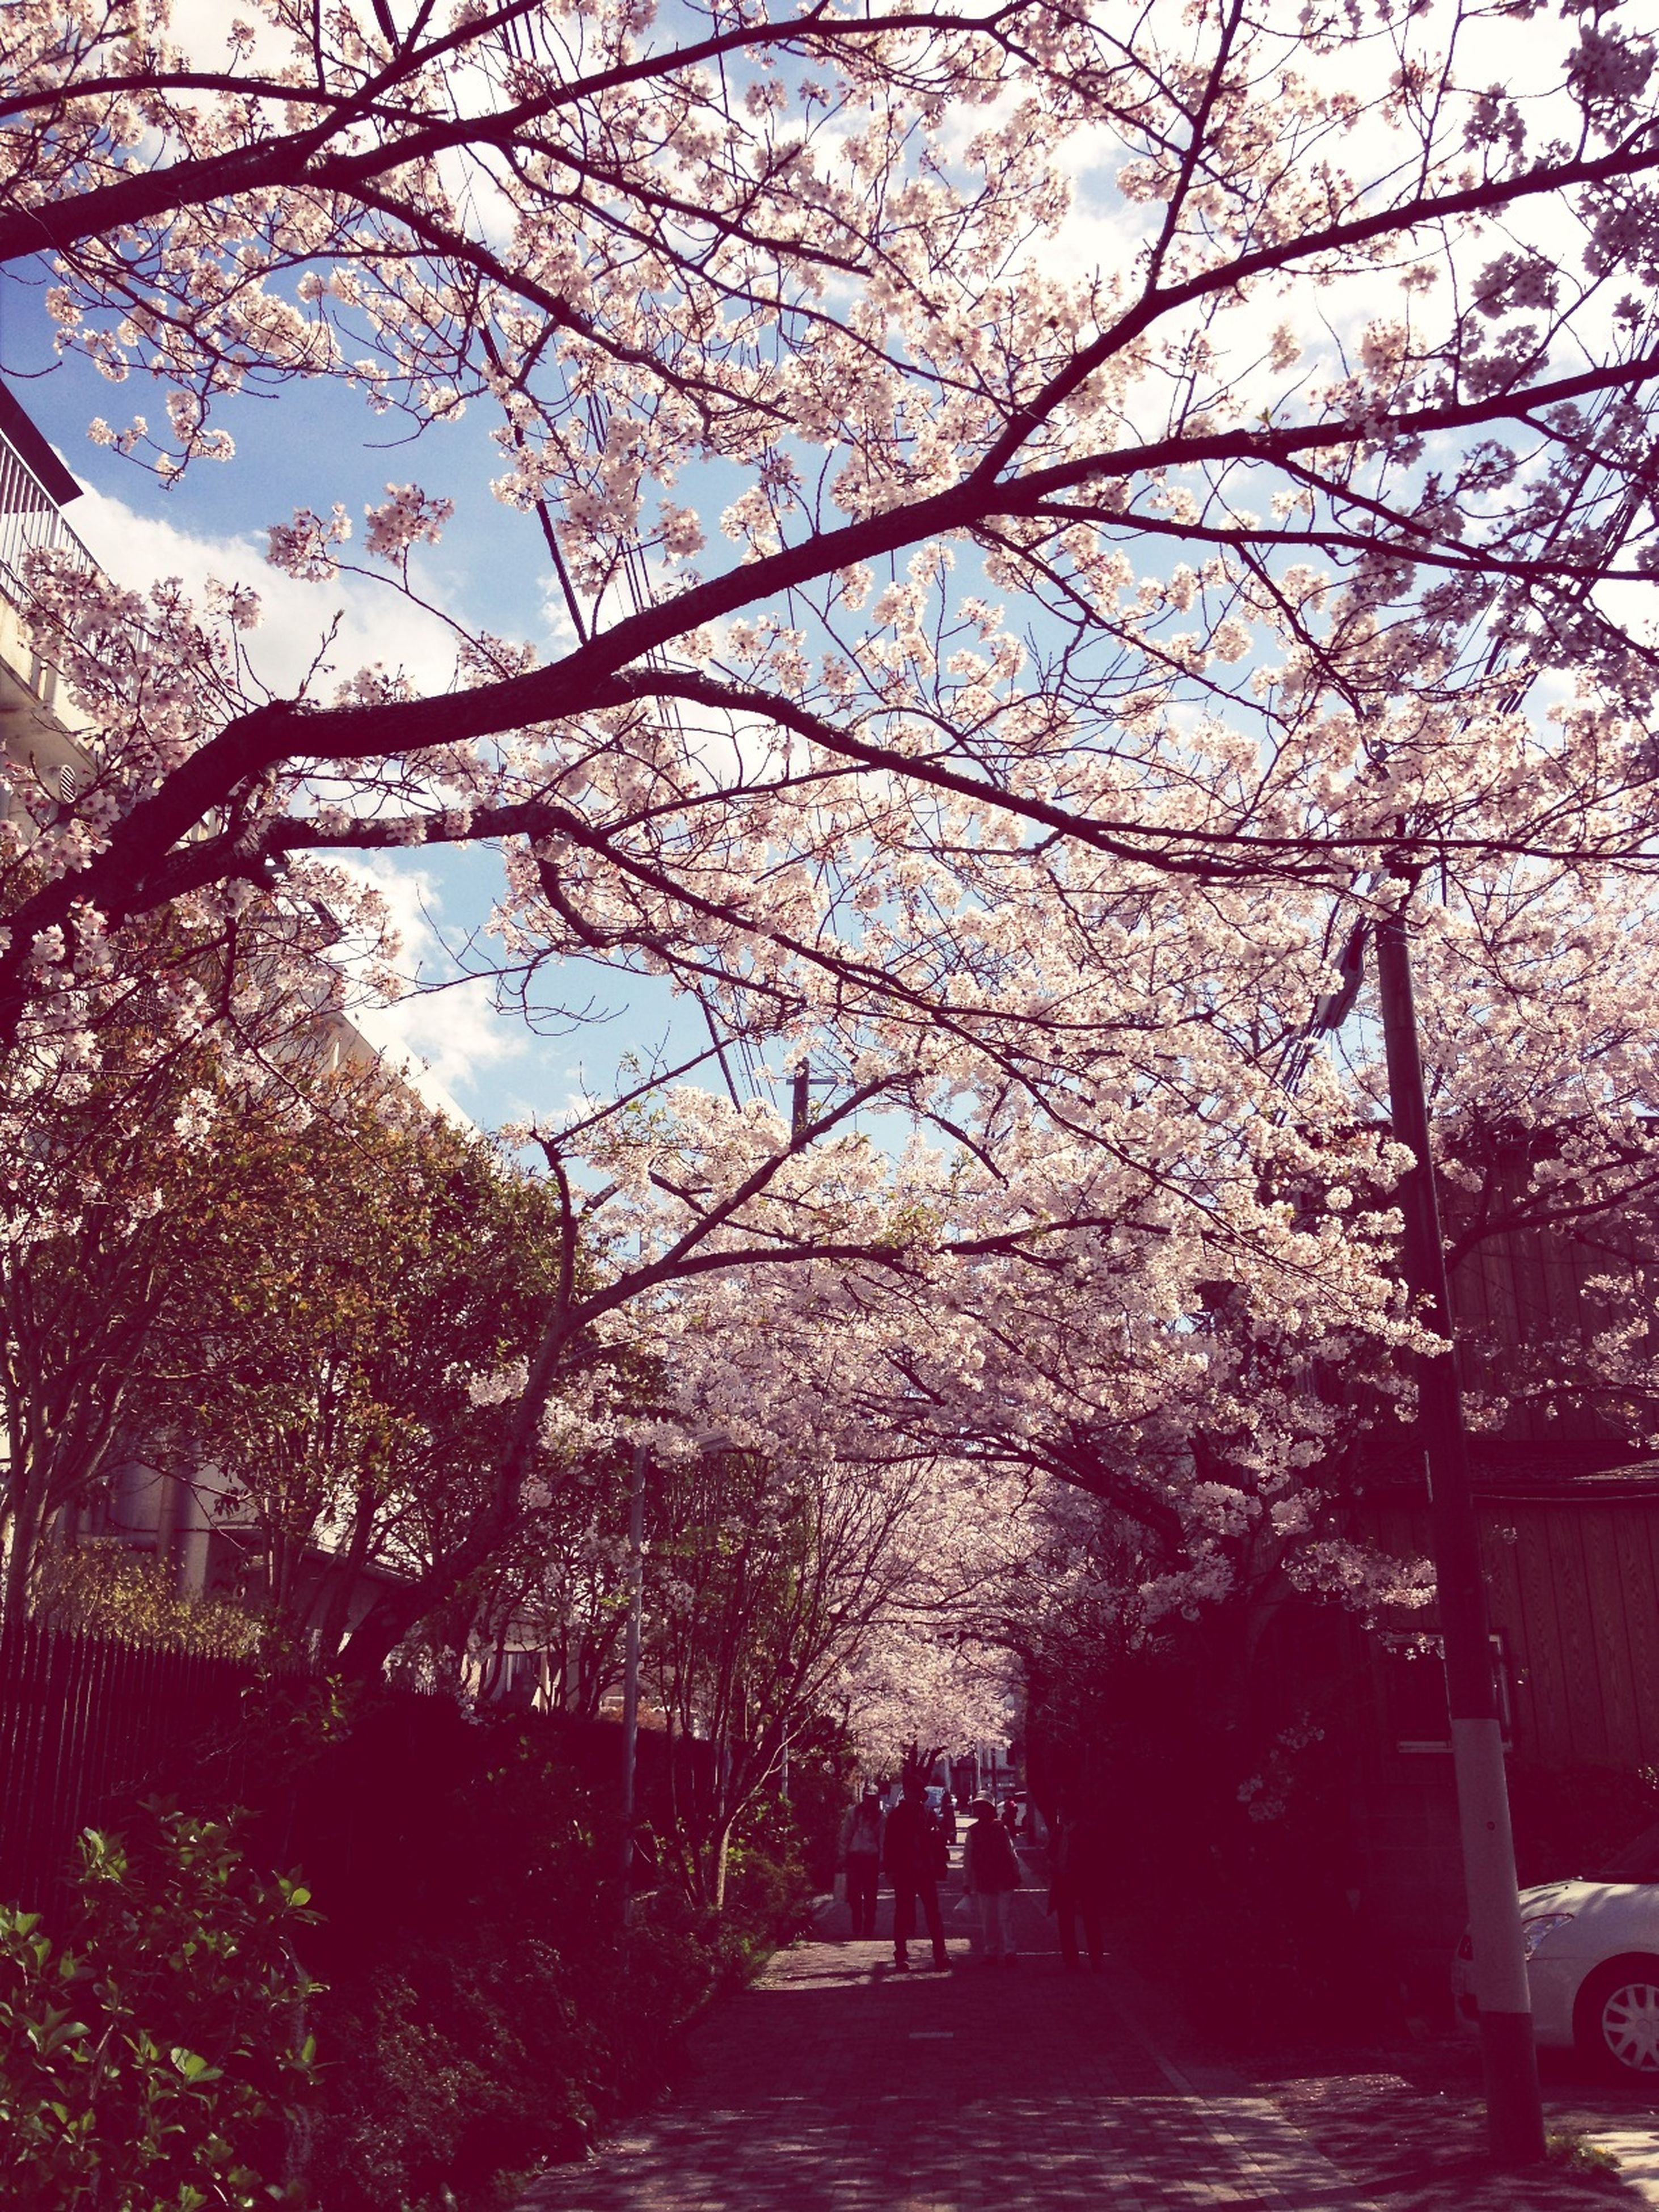 tree, branch, built structure, low angle view, growth, flower, building exterior, architecture, street light, nature, lighting equipment, sky, day, the way forward, outdoors, sunlight, tree trunk, blossom, transportation, no people